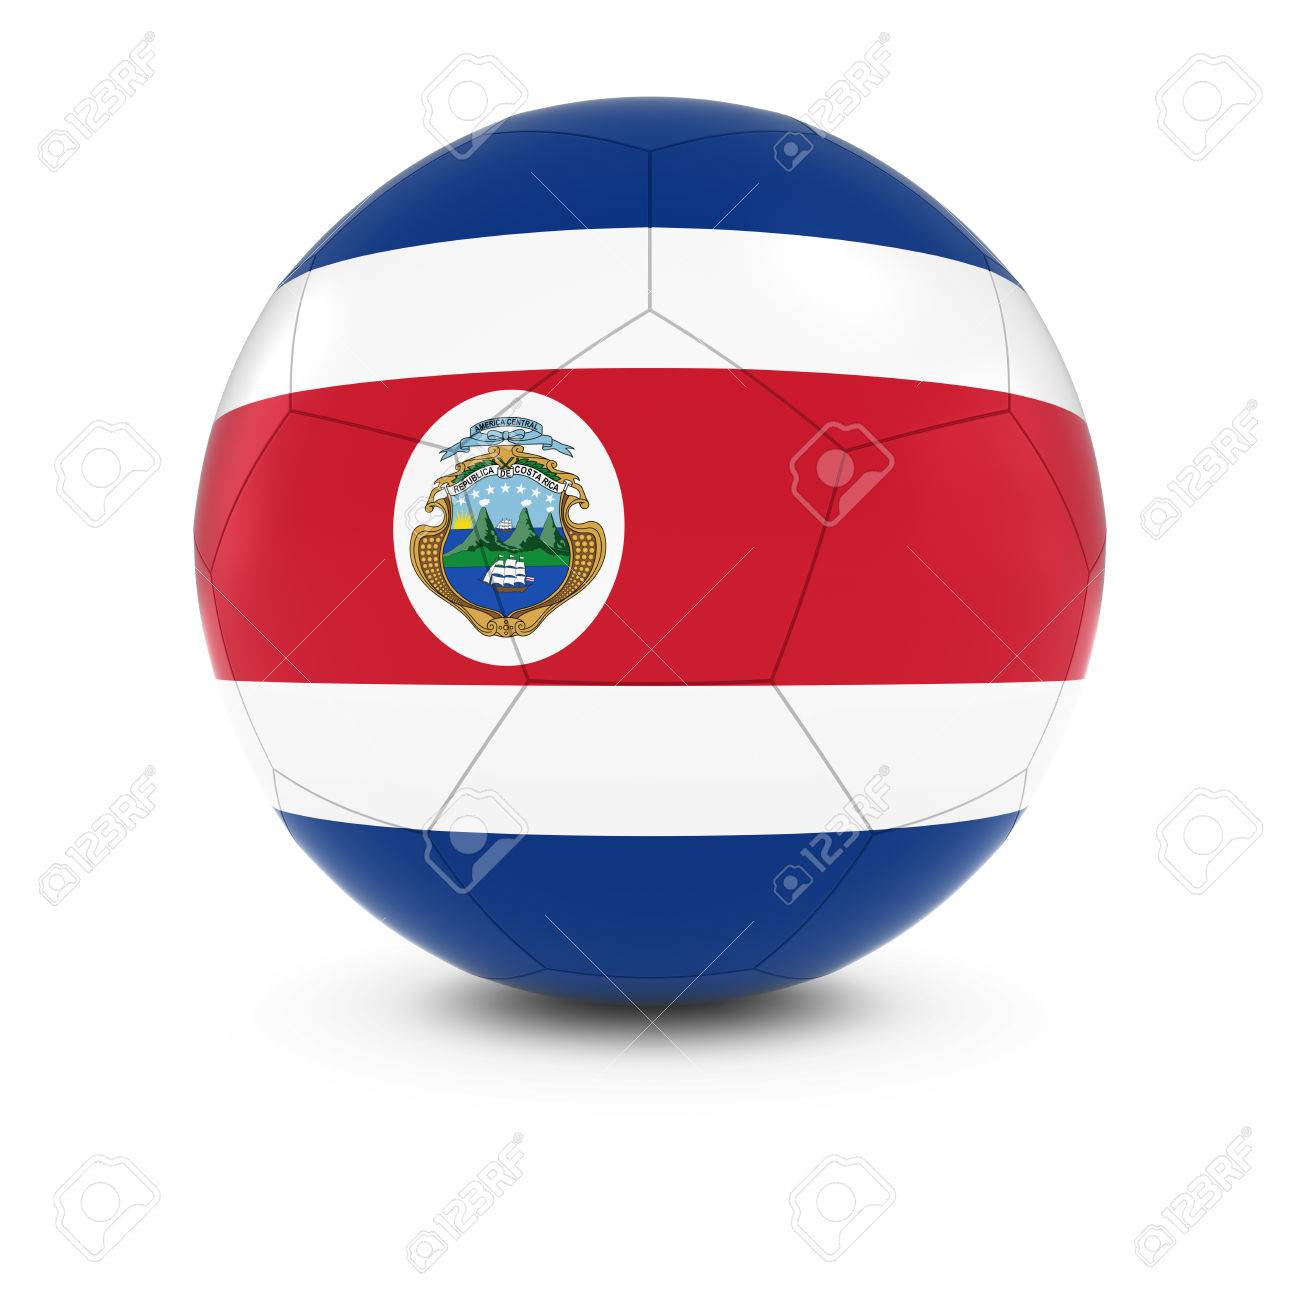 costa rica football costa rican flag on soccer ball stock photo